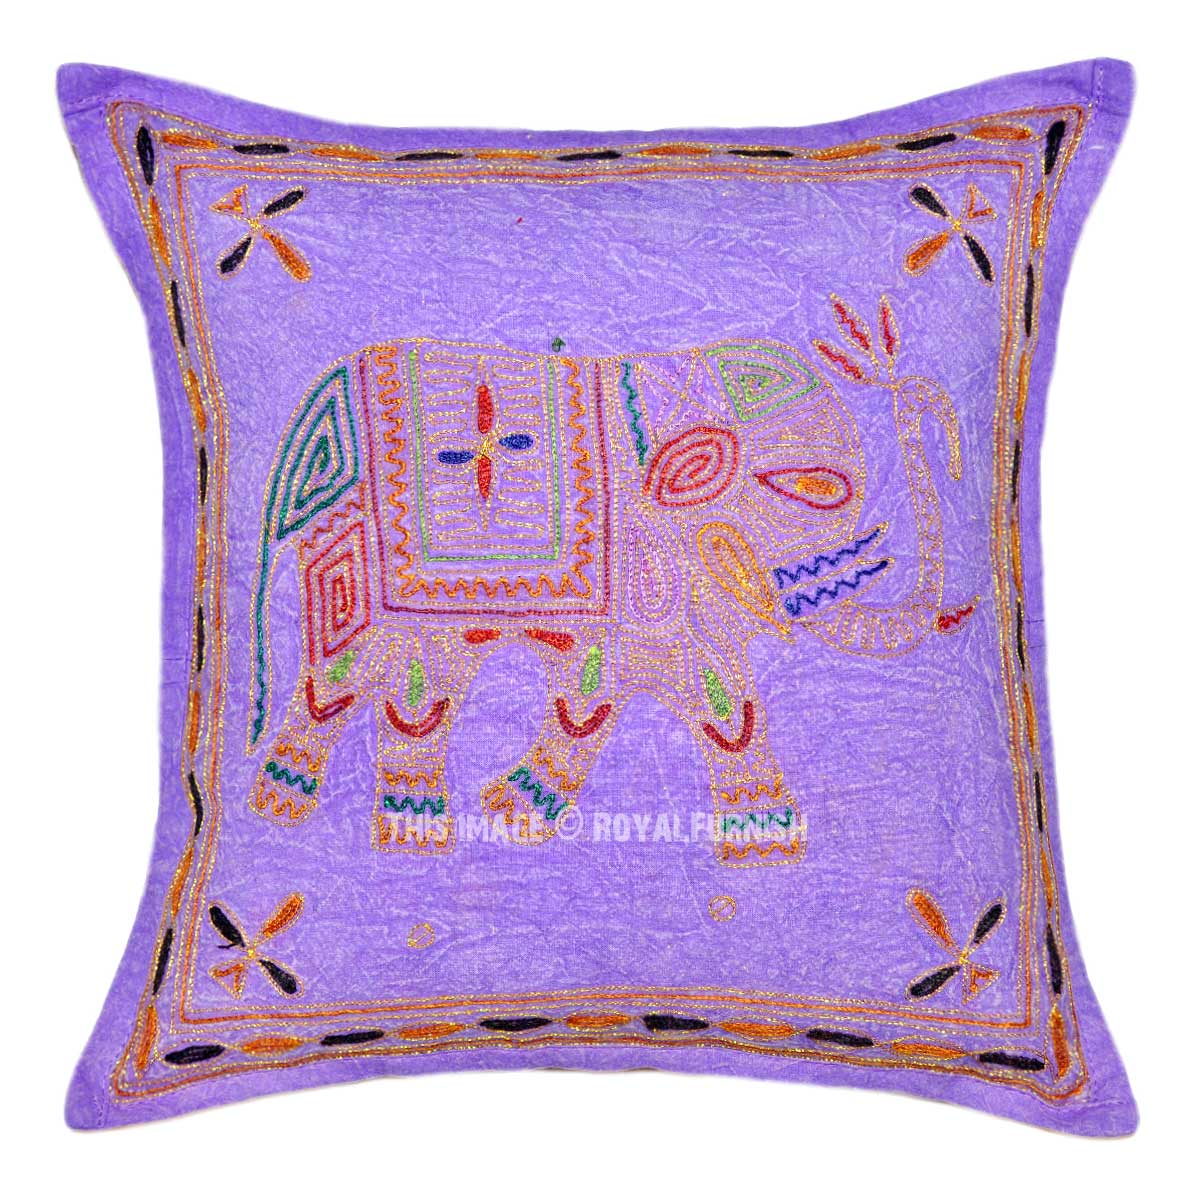 Purple Decorative Embroidered Elephant Cotton Pillow Cover - RoyalFurnish.com